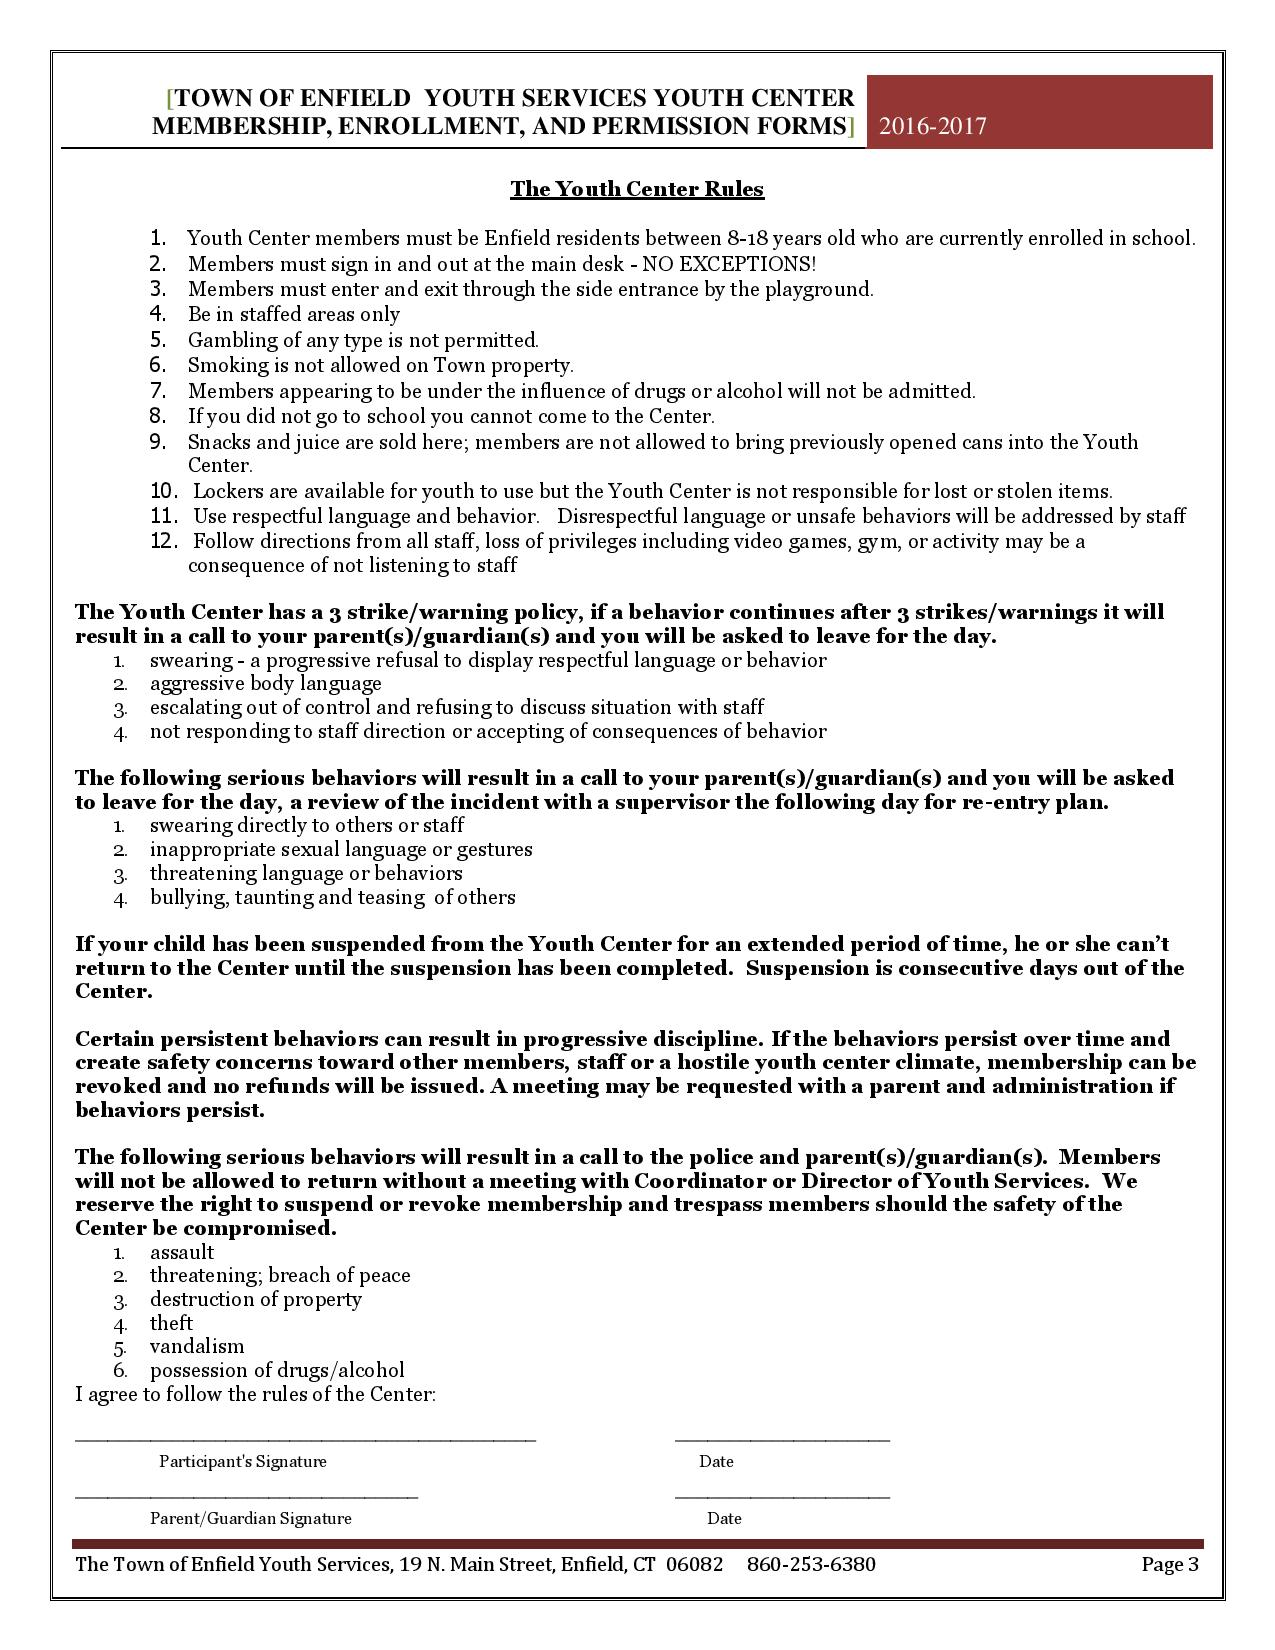 Youth center packet 16-17 (1)-page-003